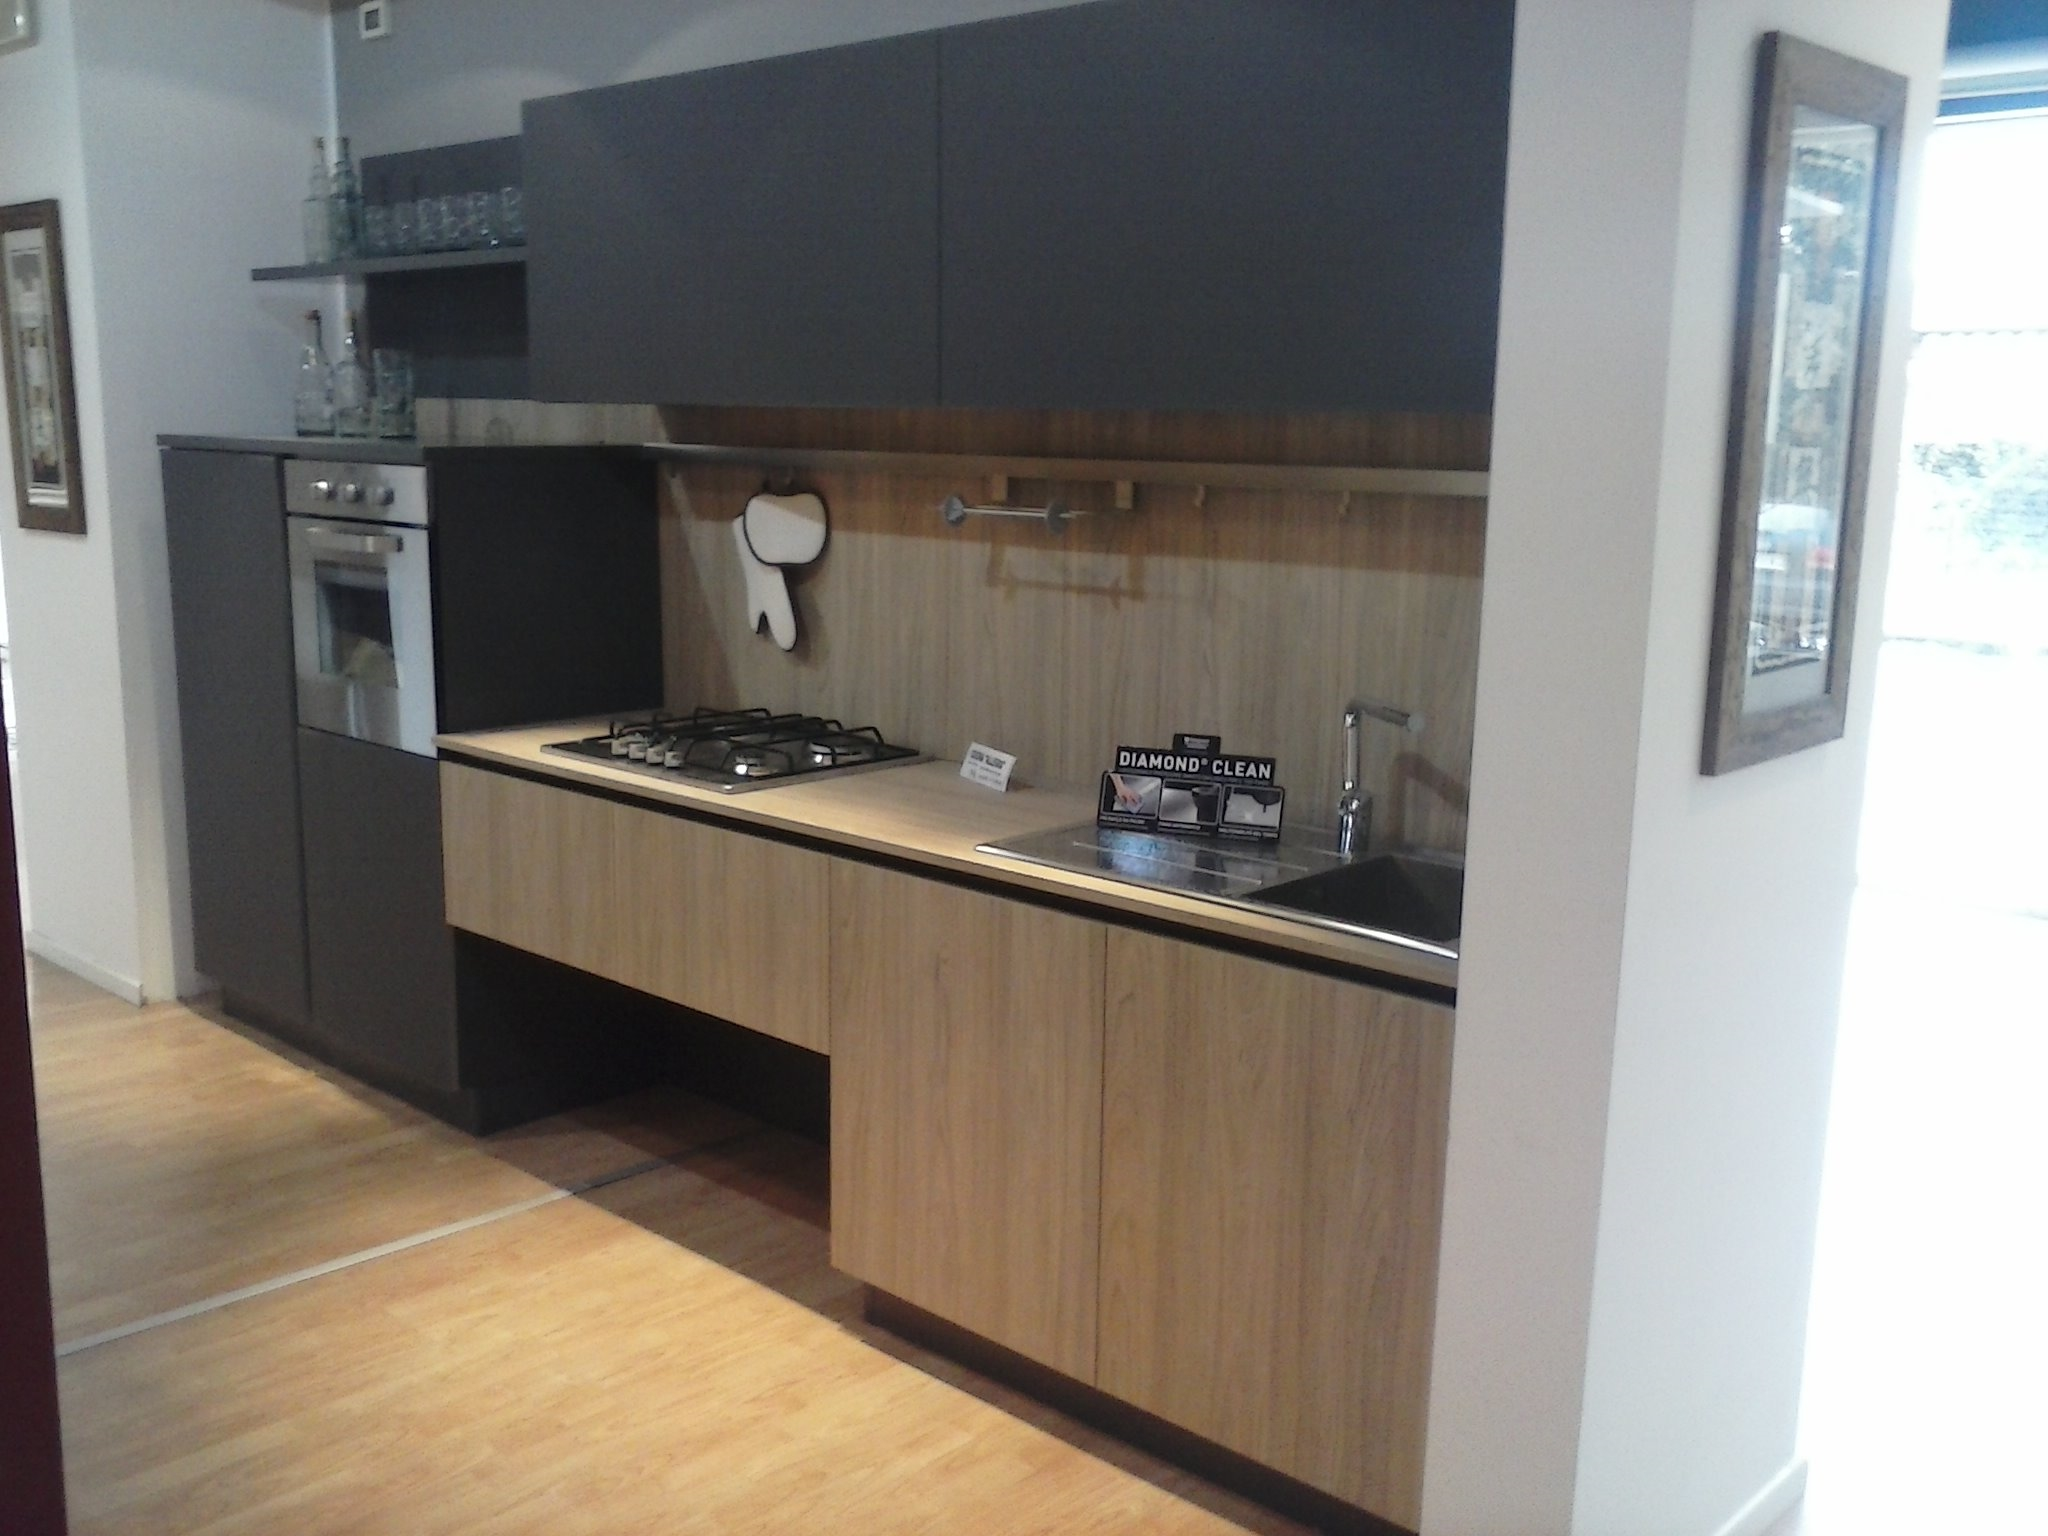 Stunning cucine stosa outlet images - Riverniciare ante cucina ...